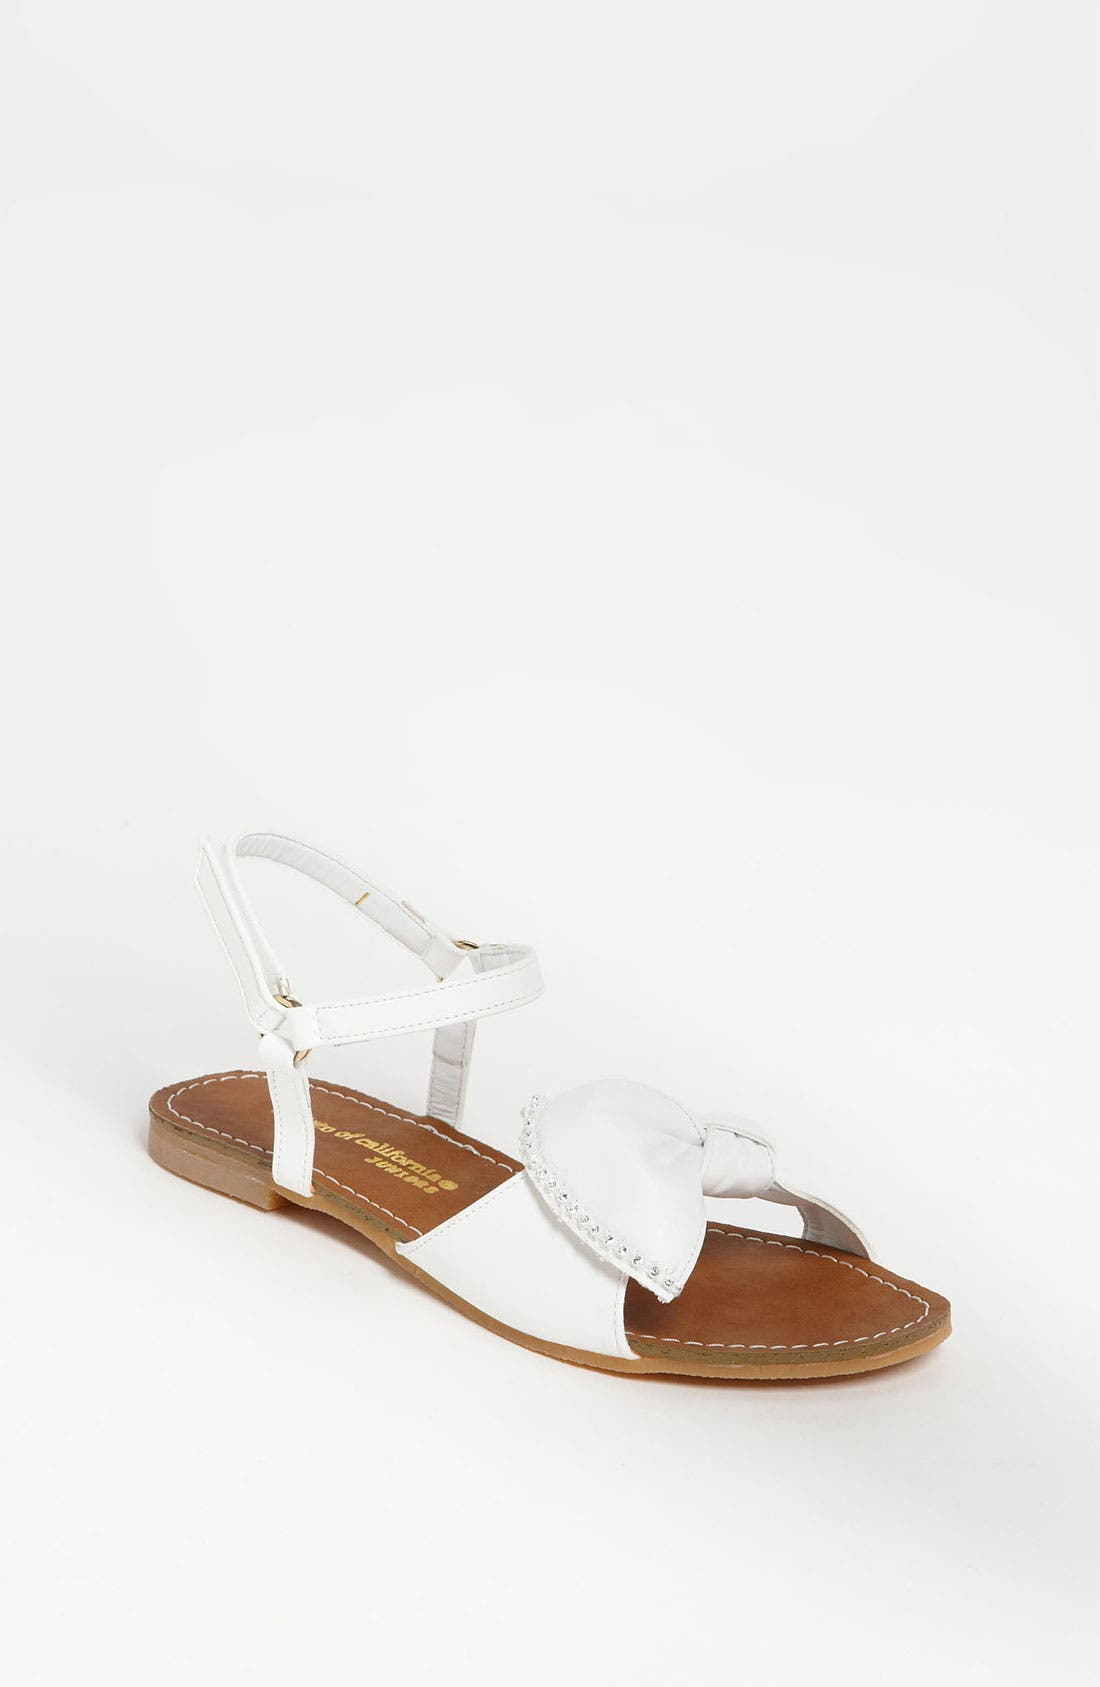 Alternate Image 1 Selected - Callisto 'Dorothy' Sandal (Toddler, Little Kid & Big Kid)